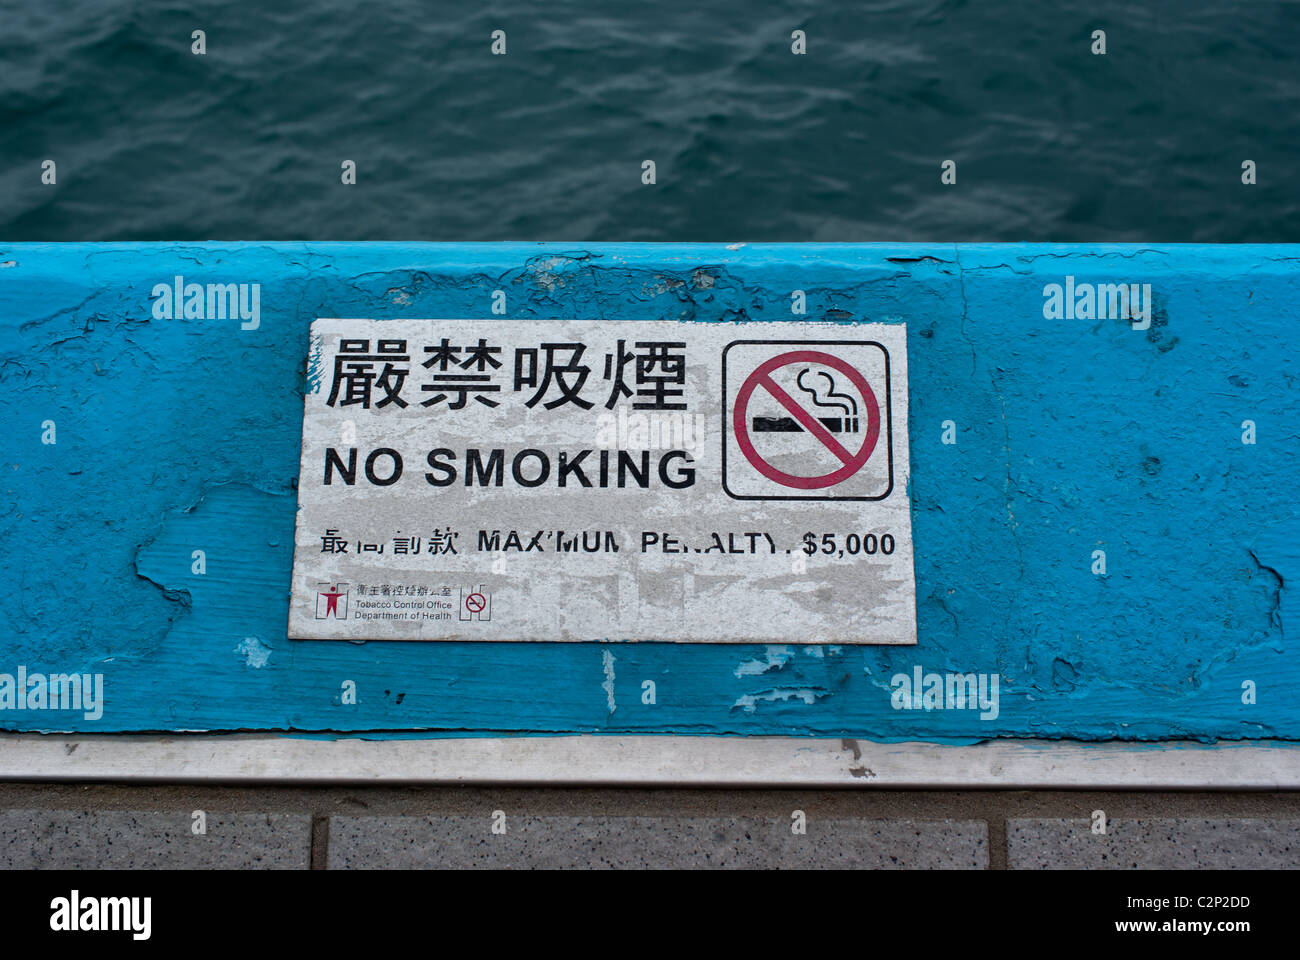 No smoking sign in Cantonese - Stock Image